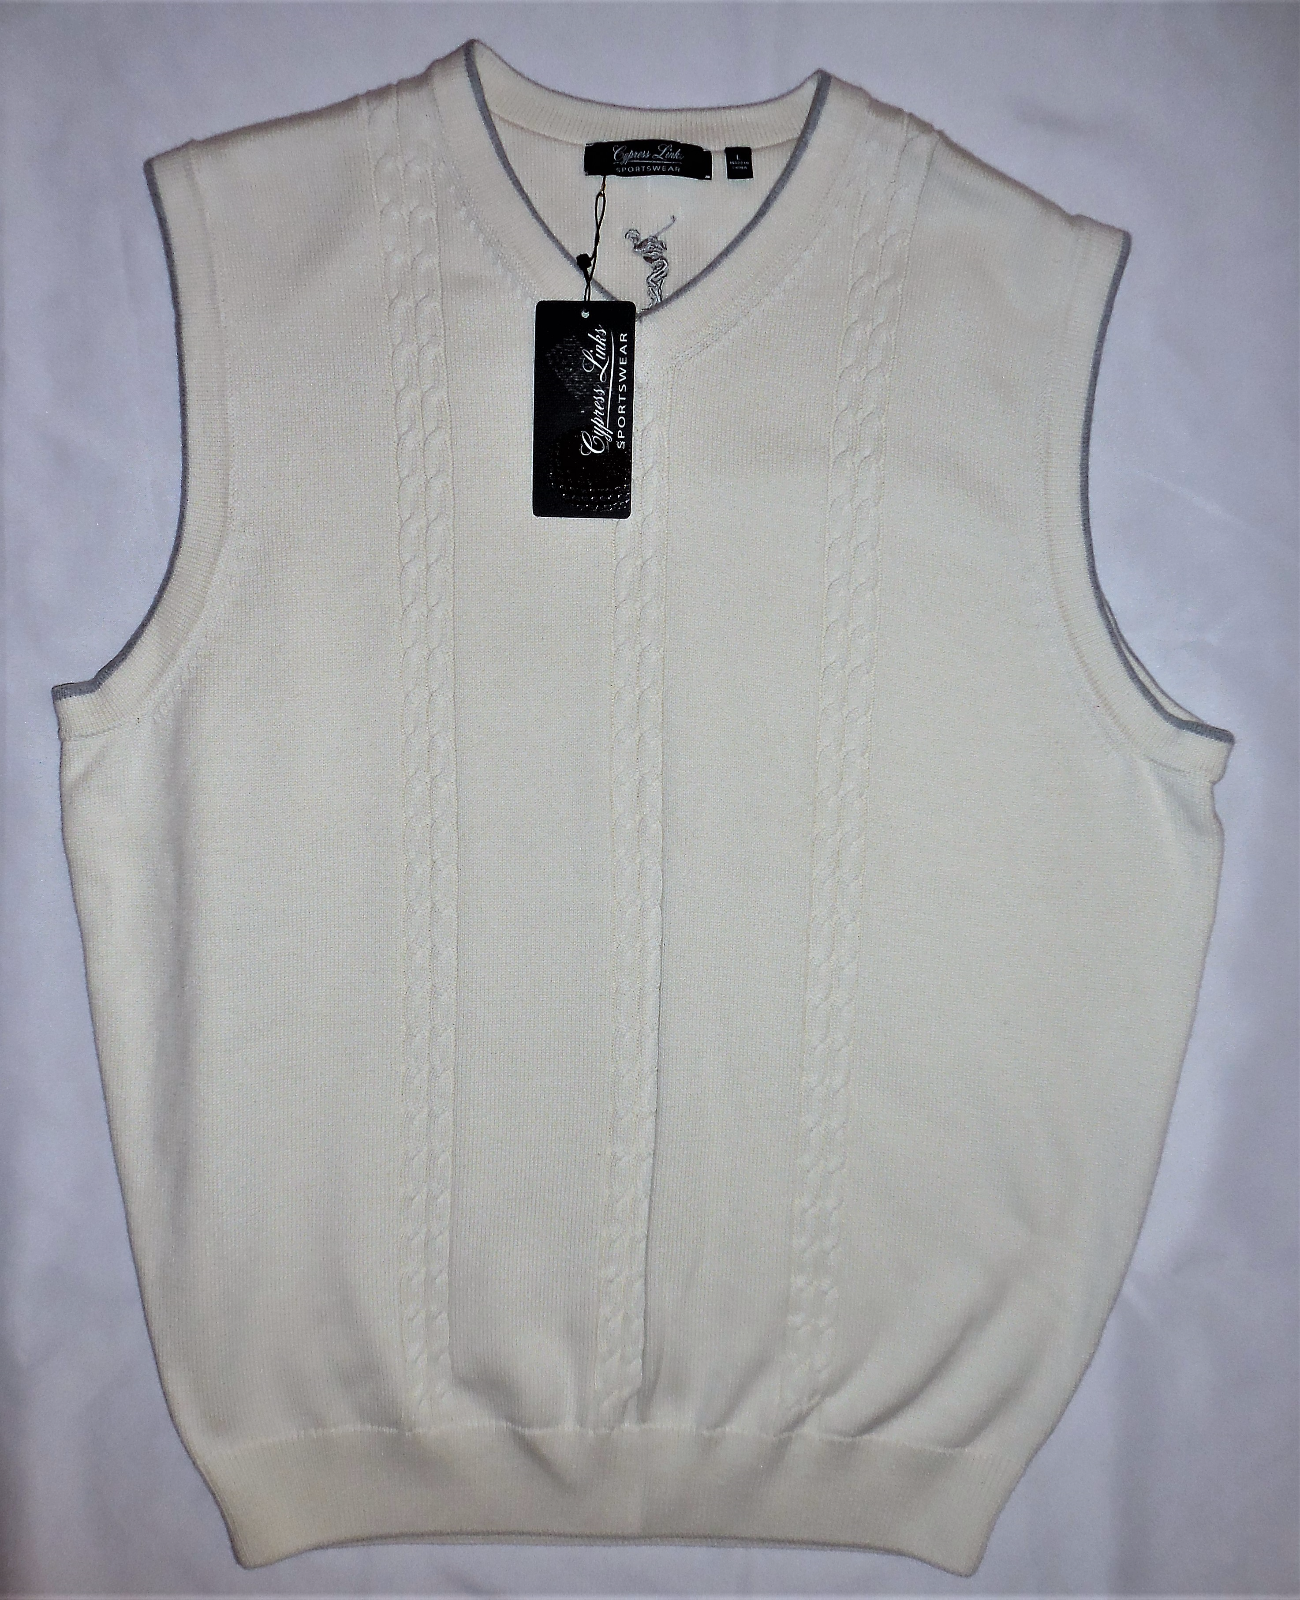 CYPRESS LINKS Cable Knit Cream Sweater Vest Large Golf Attire Sportswear LARGE image 6